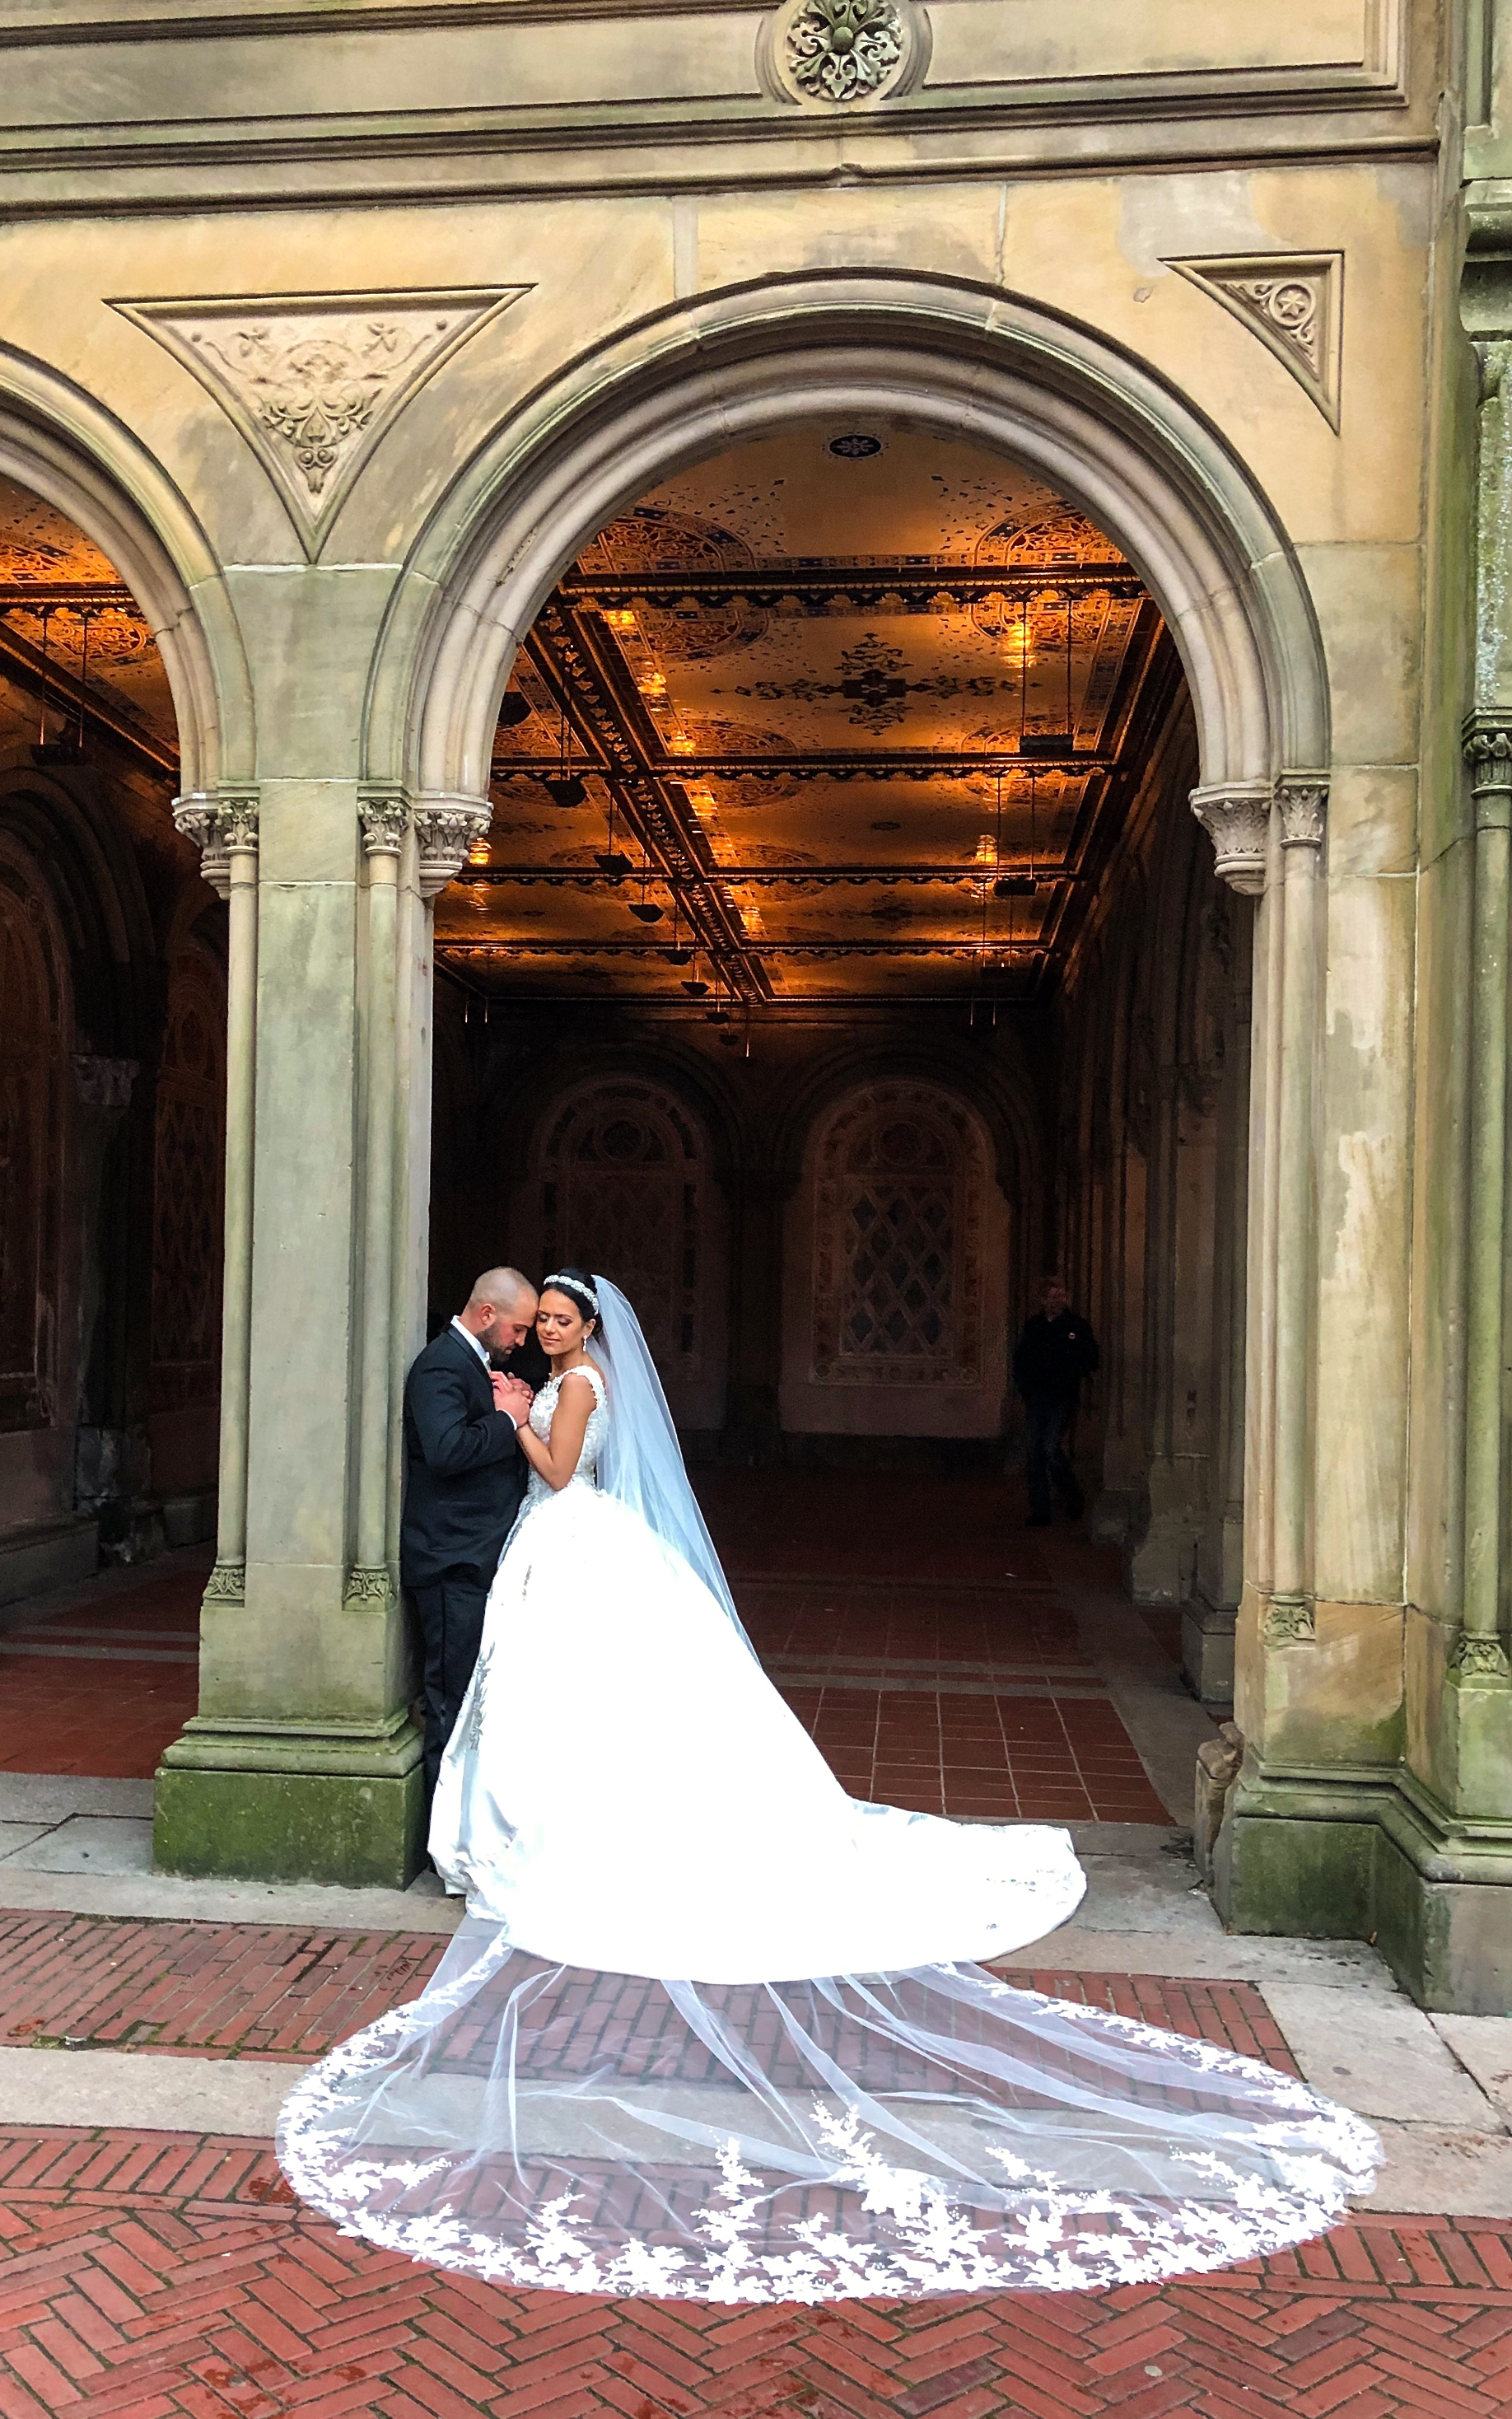 @ Bride & Groom_Bethesda Terrace_Central Park.jpg